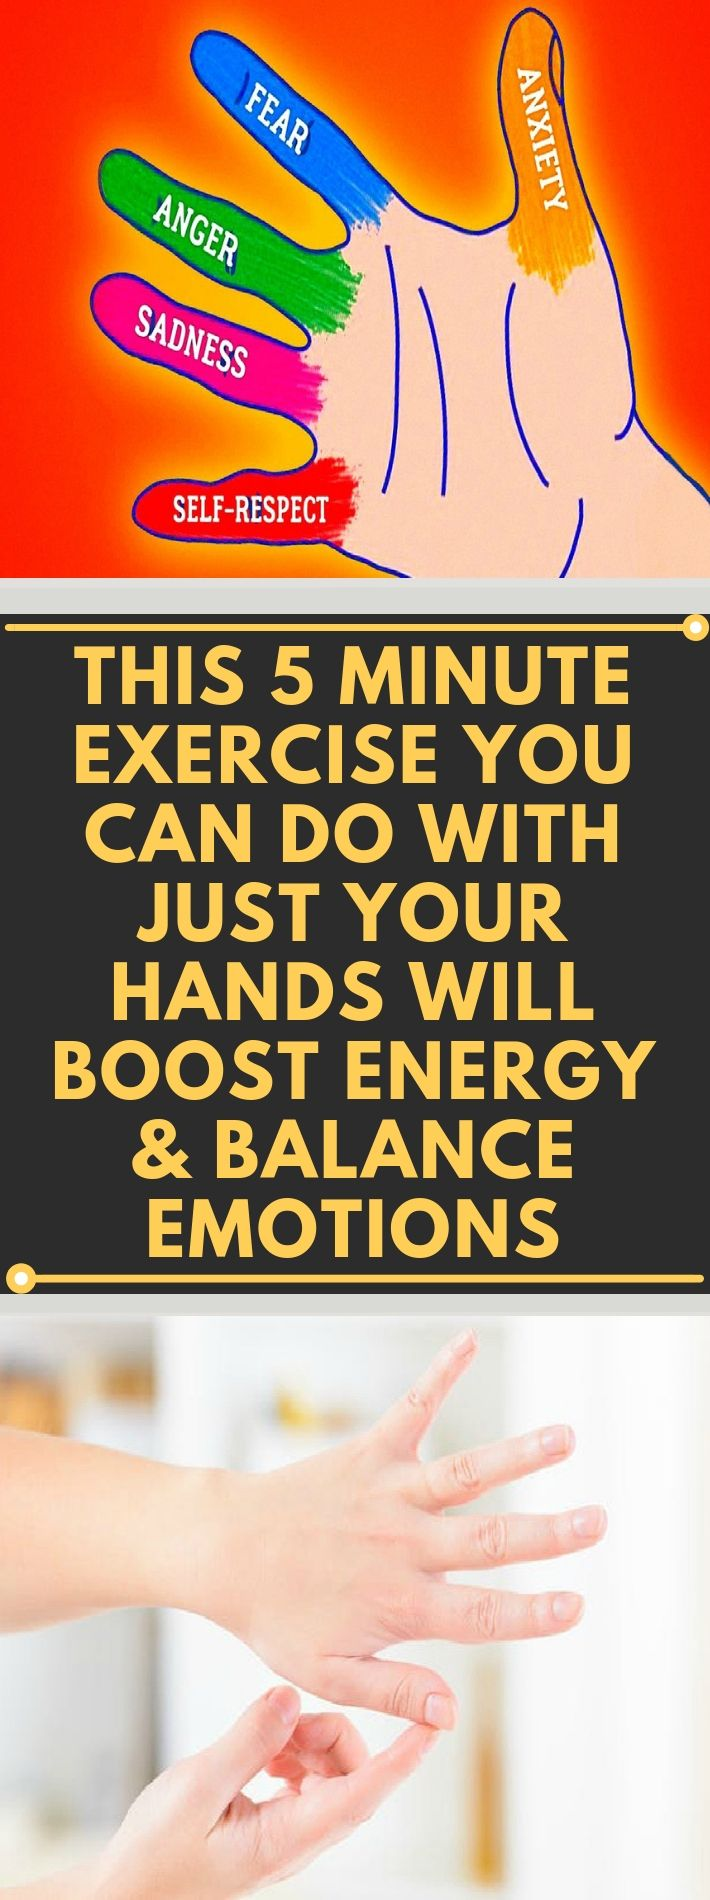 This 5 Minute Exercise You Can Do With Just Your Hands